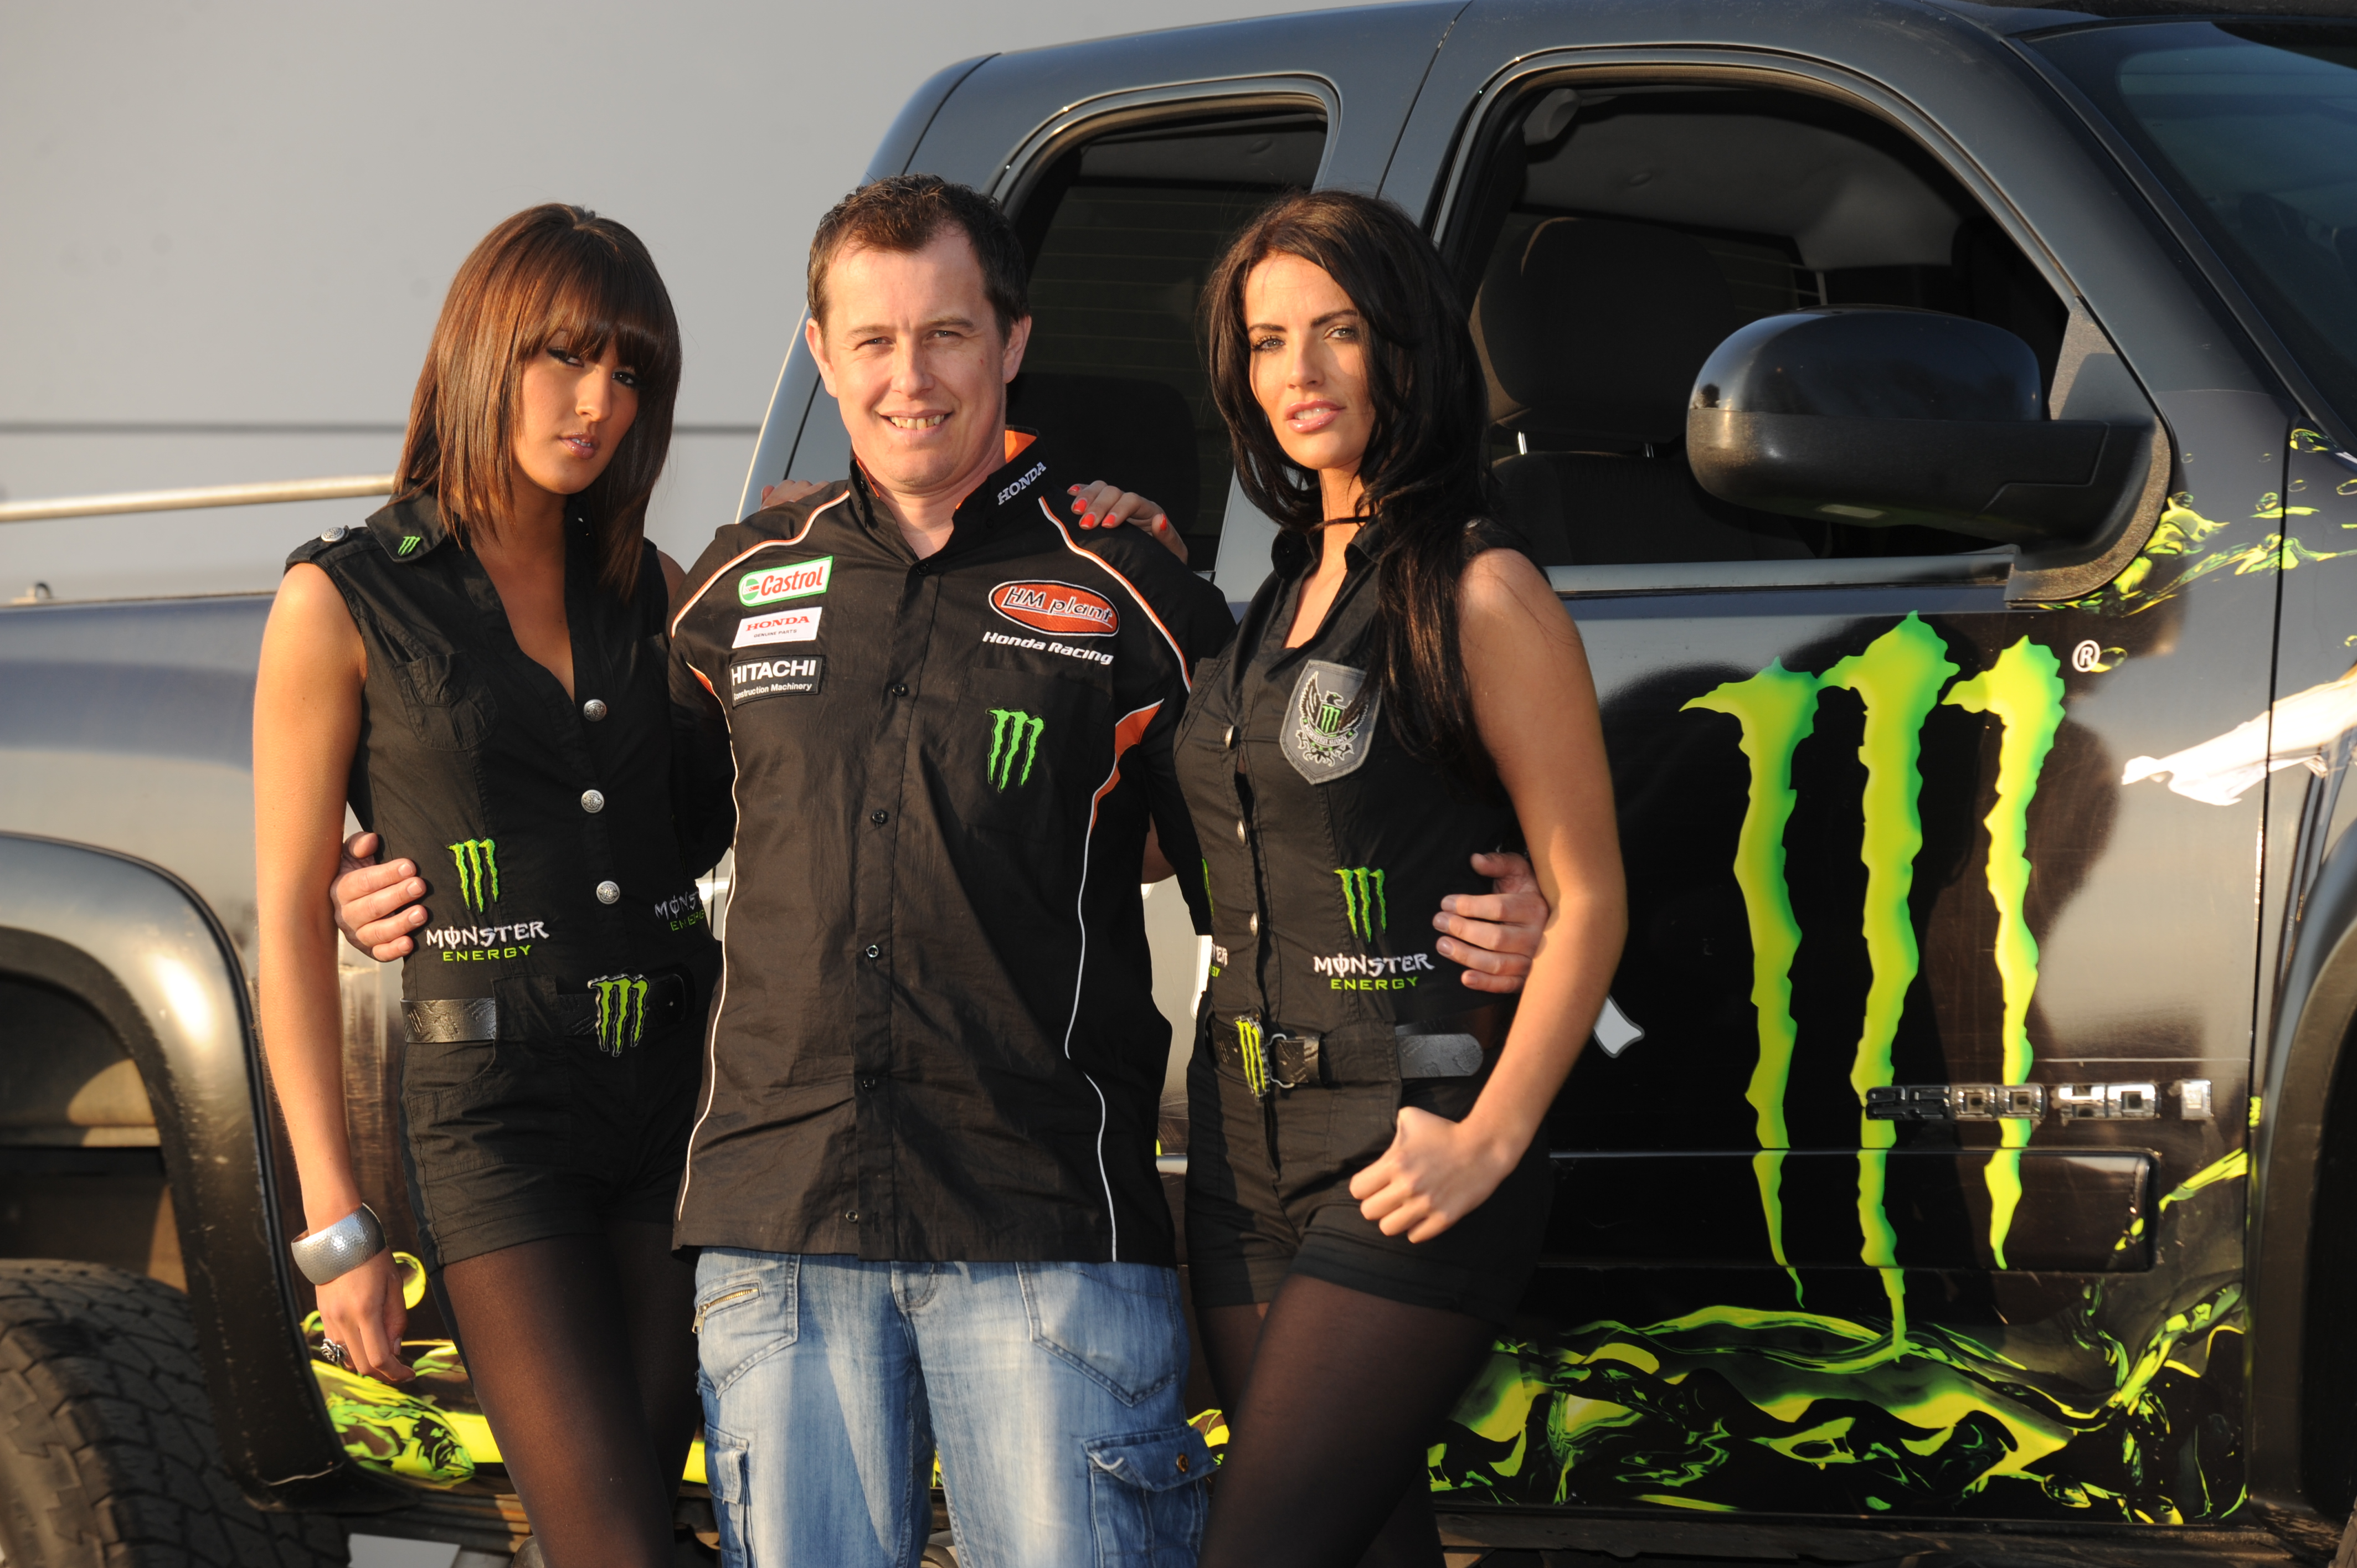 monster energy to fuel the 2010 isle of man tt